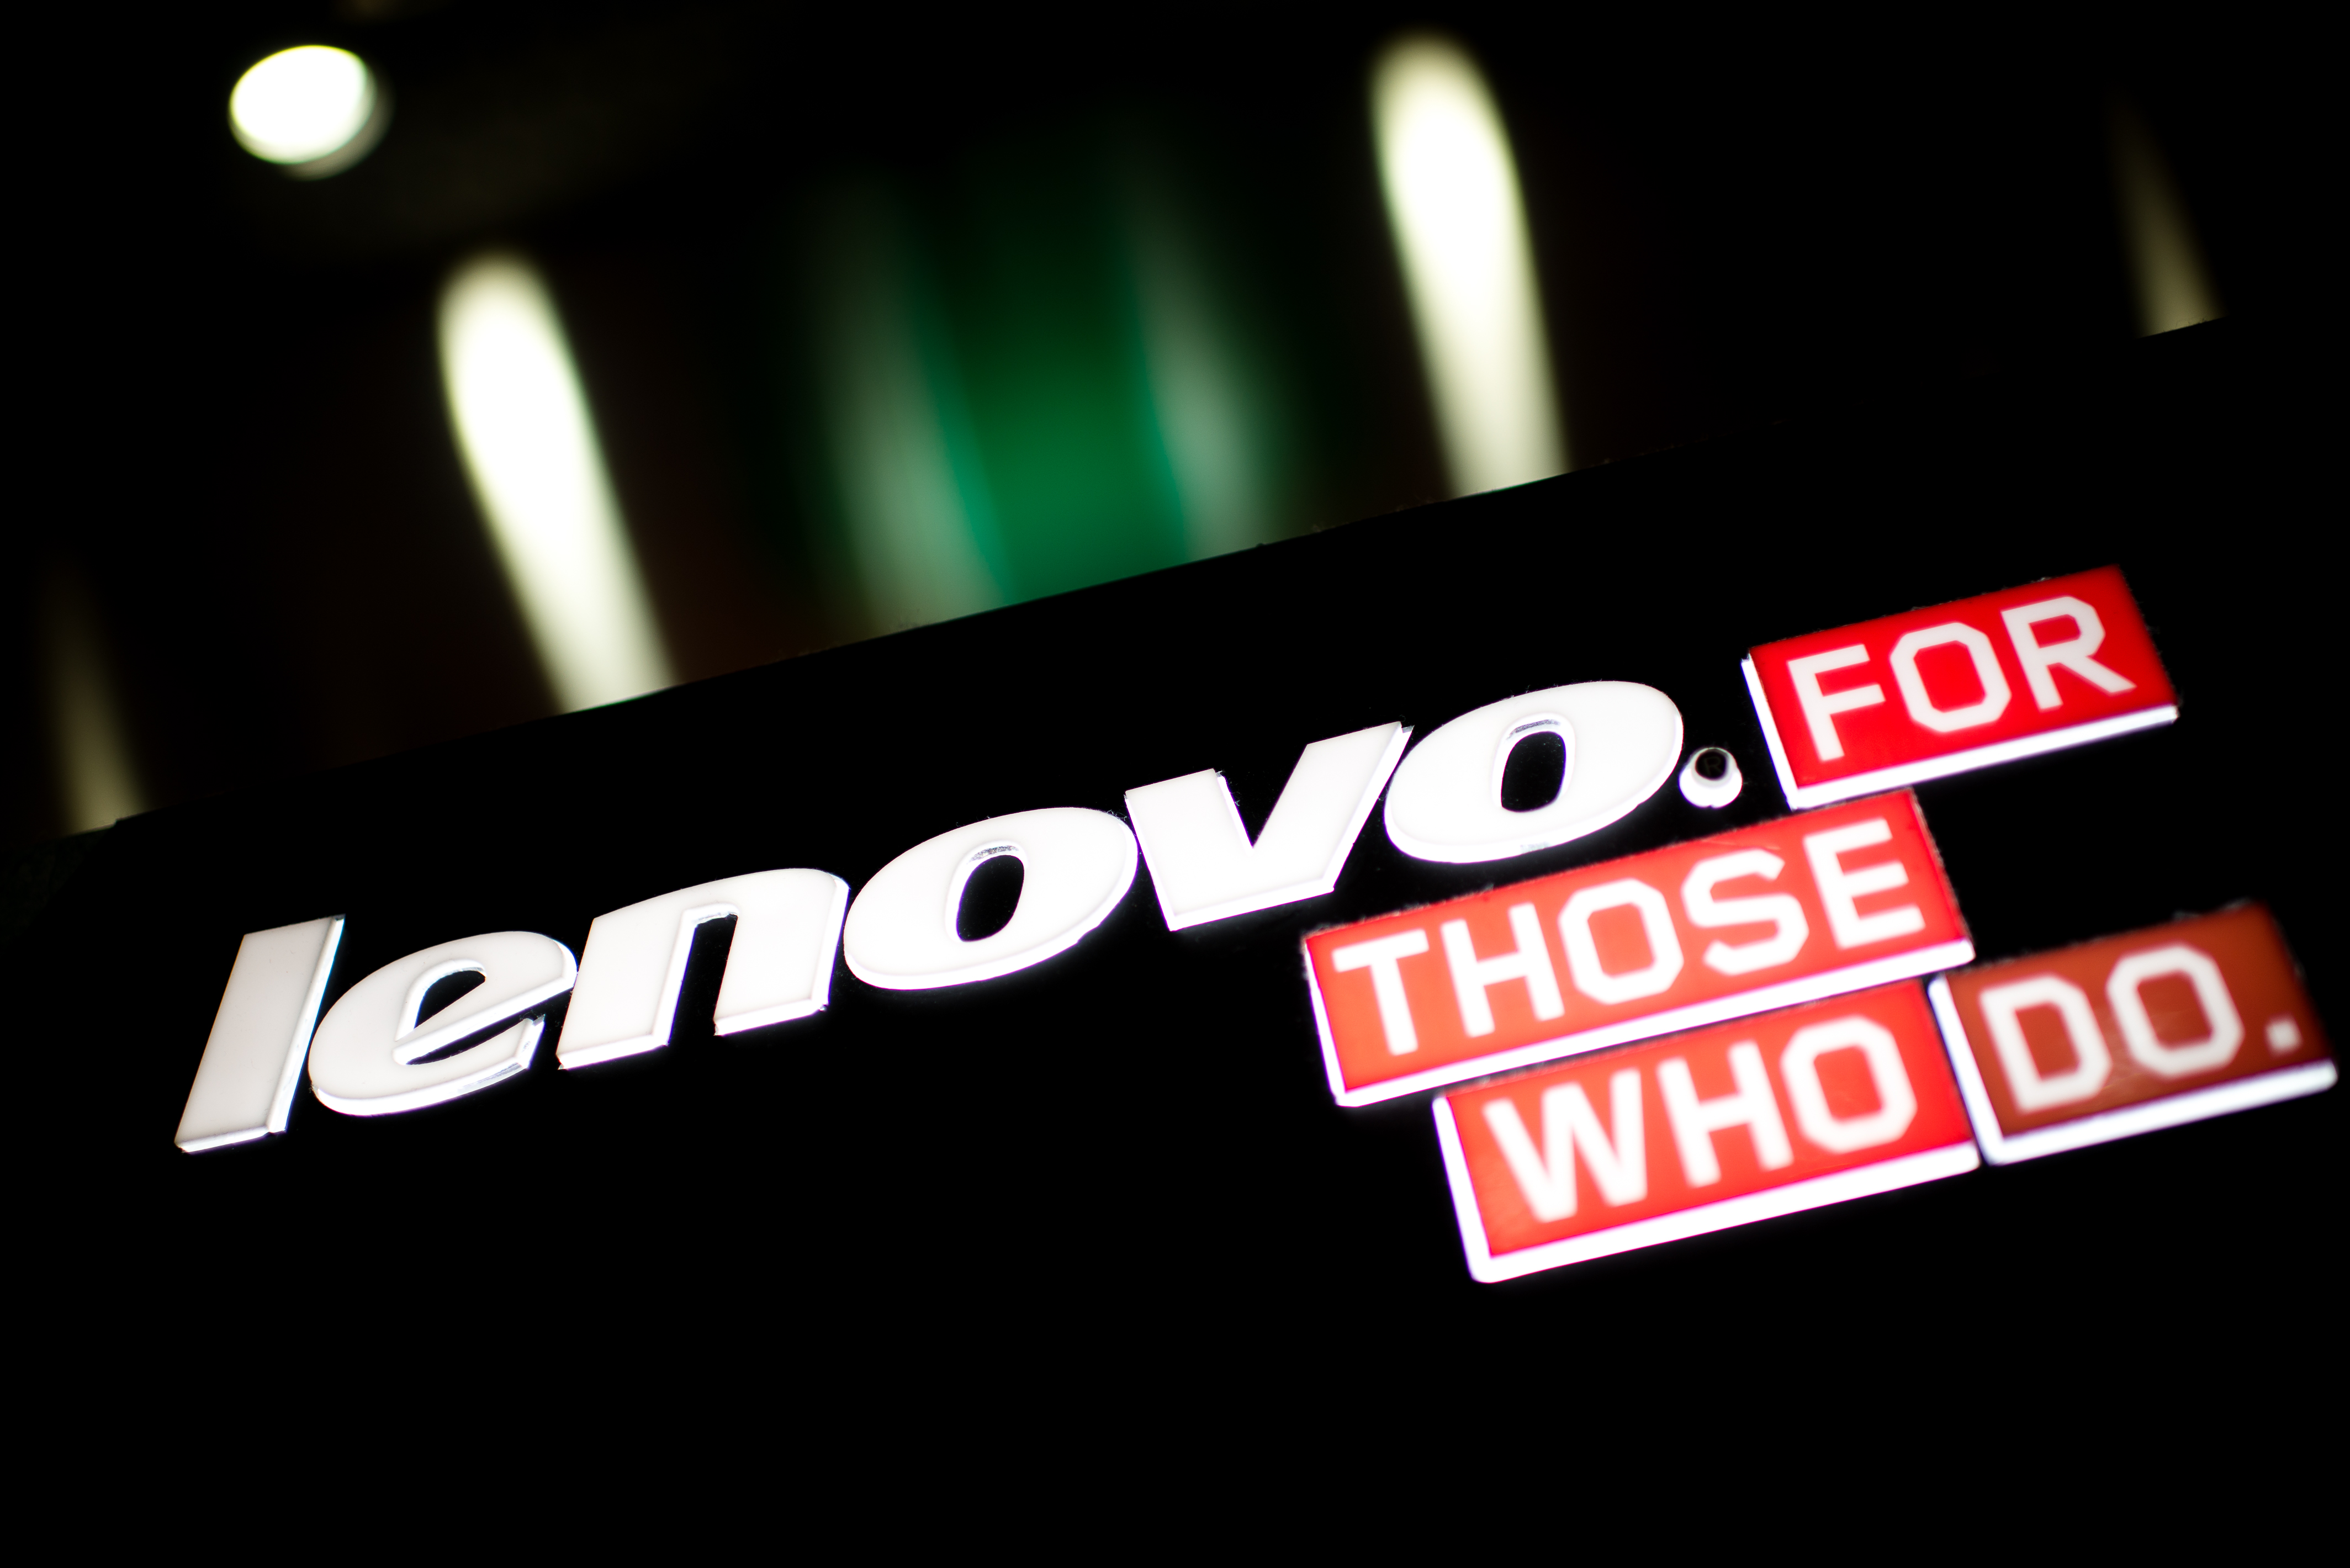 A logo of Chinese computer giant Lenovo is displayed in Hong Kong on February 13, 2014. Lenovo Chairman Yang Yuanqing pledged on February 13 to make the company the world's third-biggest smartphone seller following an acquisition binge as the firm announced a 30 percent profit surge.  AFP PHOTO / Philippe Lopez / AFP PHOTO / PHILIPPE LOPEZ